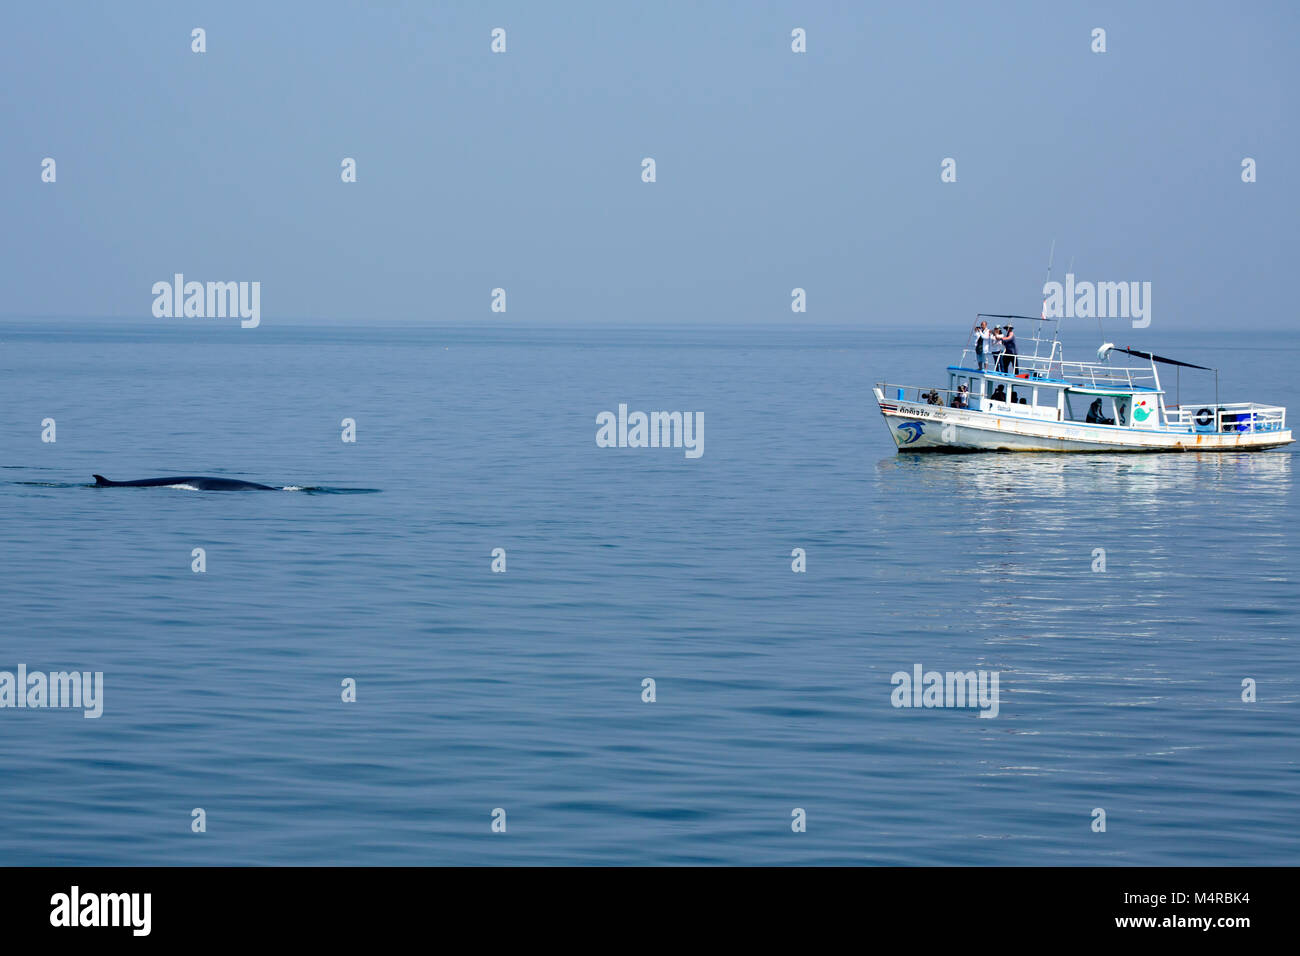 Eden's Whale (Balaenoptera edeni), a pending split from Bryde's Whale, is characterized by 5 rostrum ridges - Stock Image